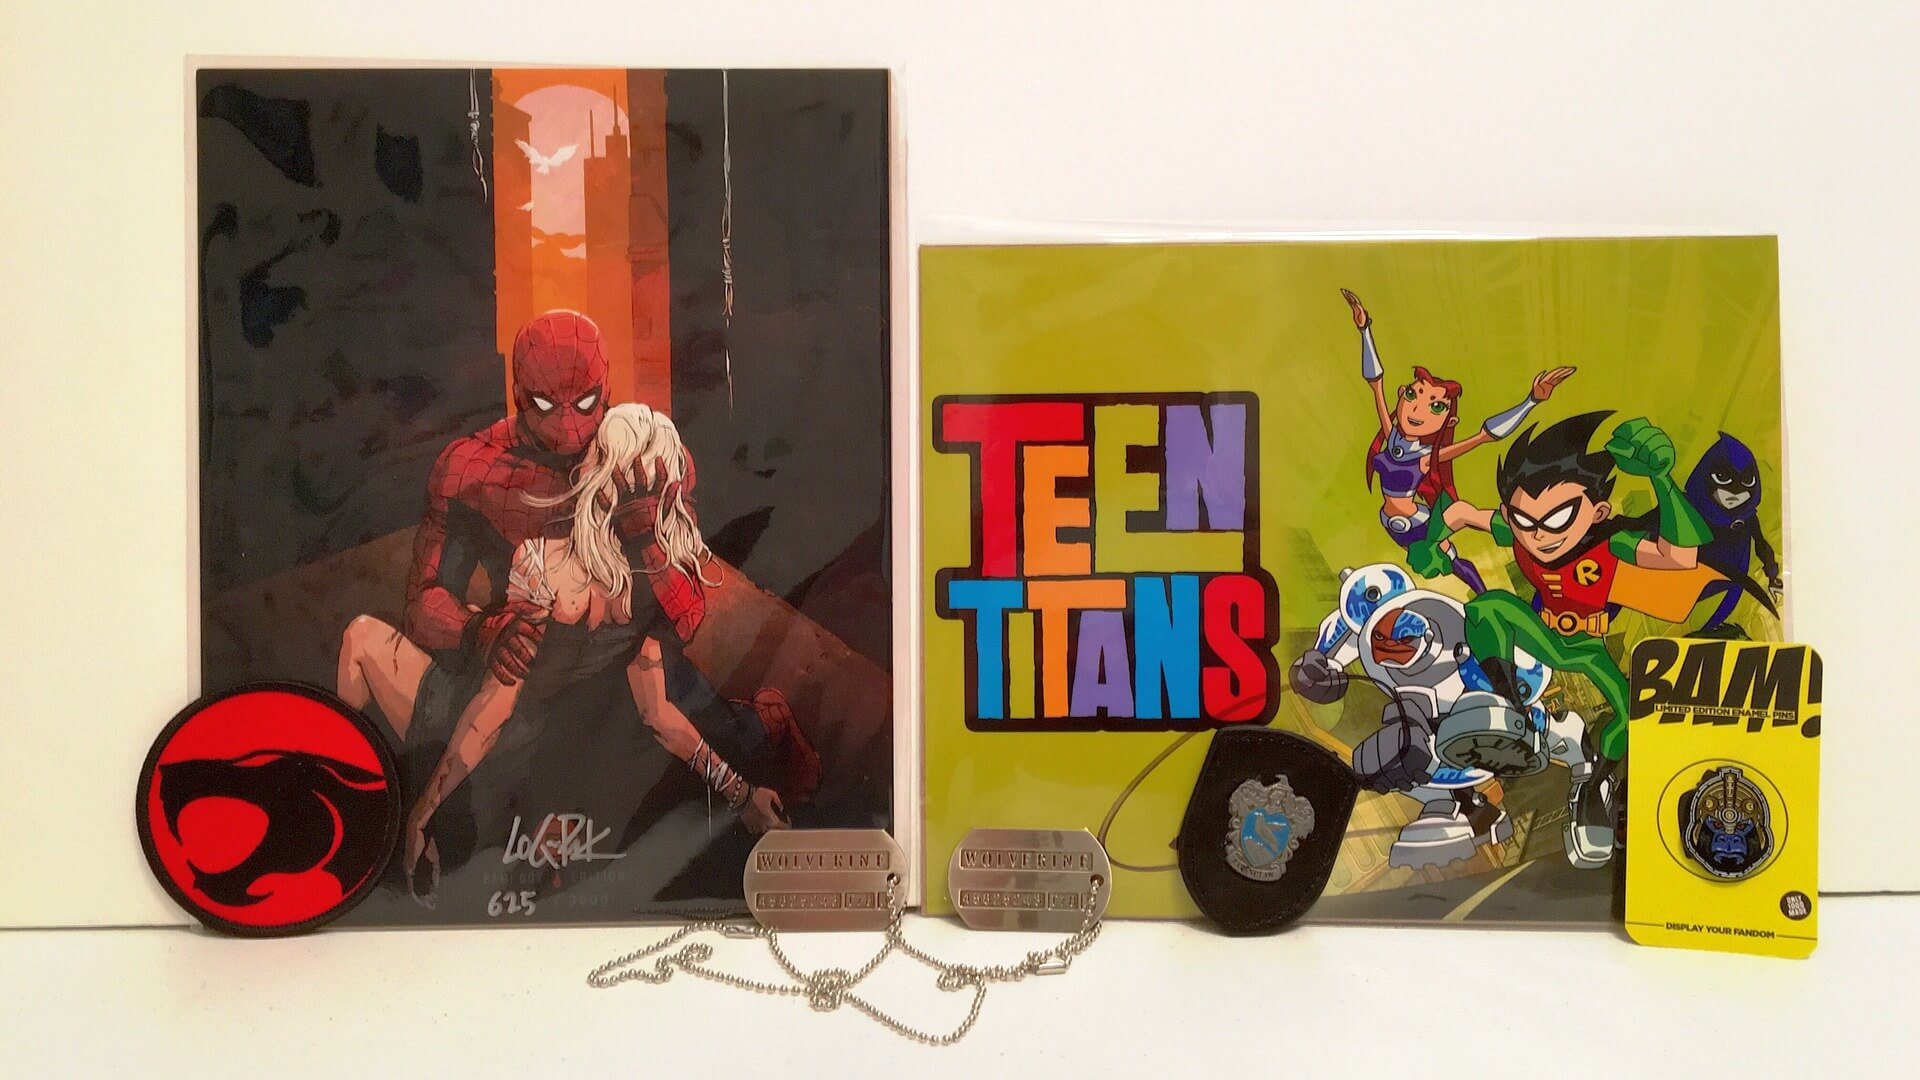 Bam Box: Art Prints, Autographs, Collectibles and More! - Review